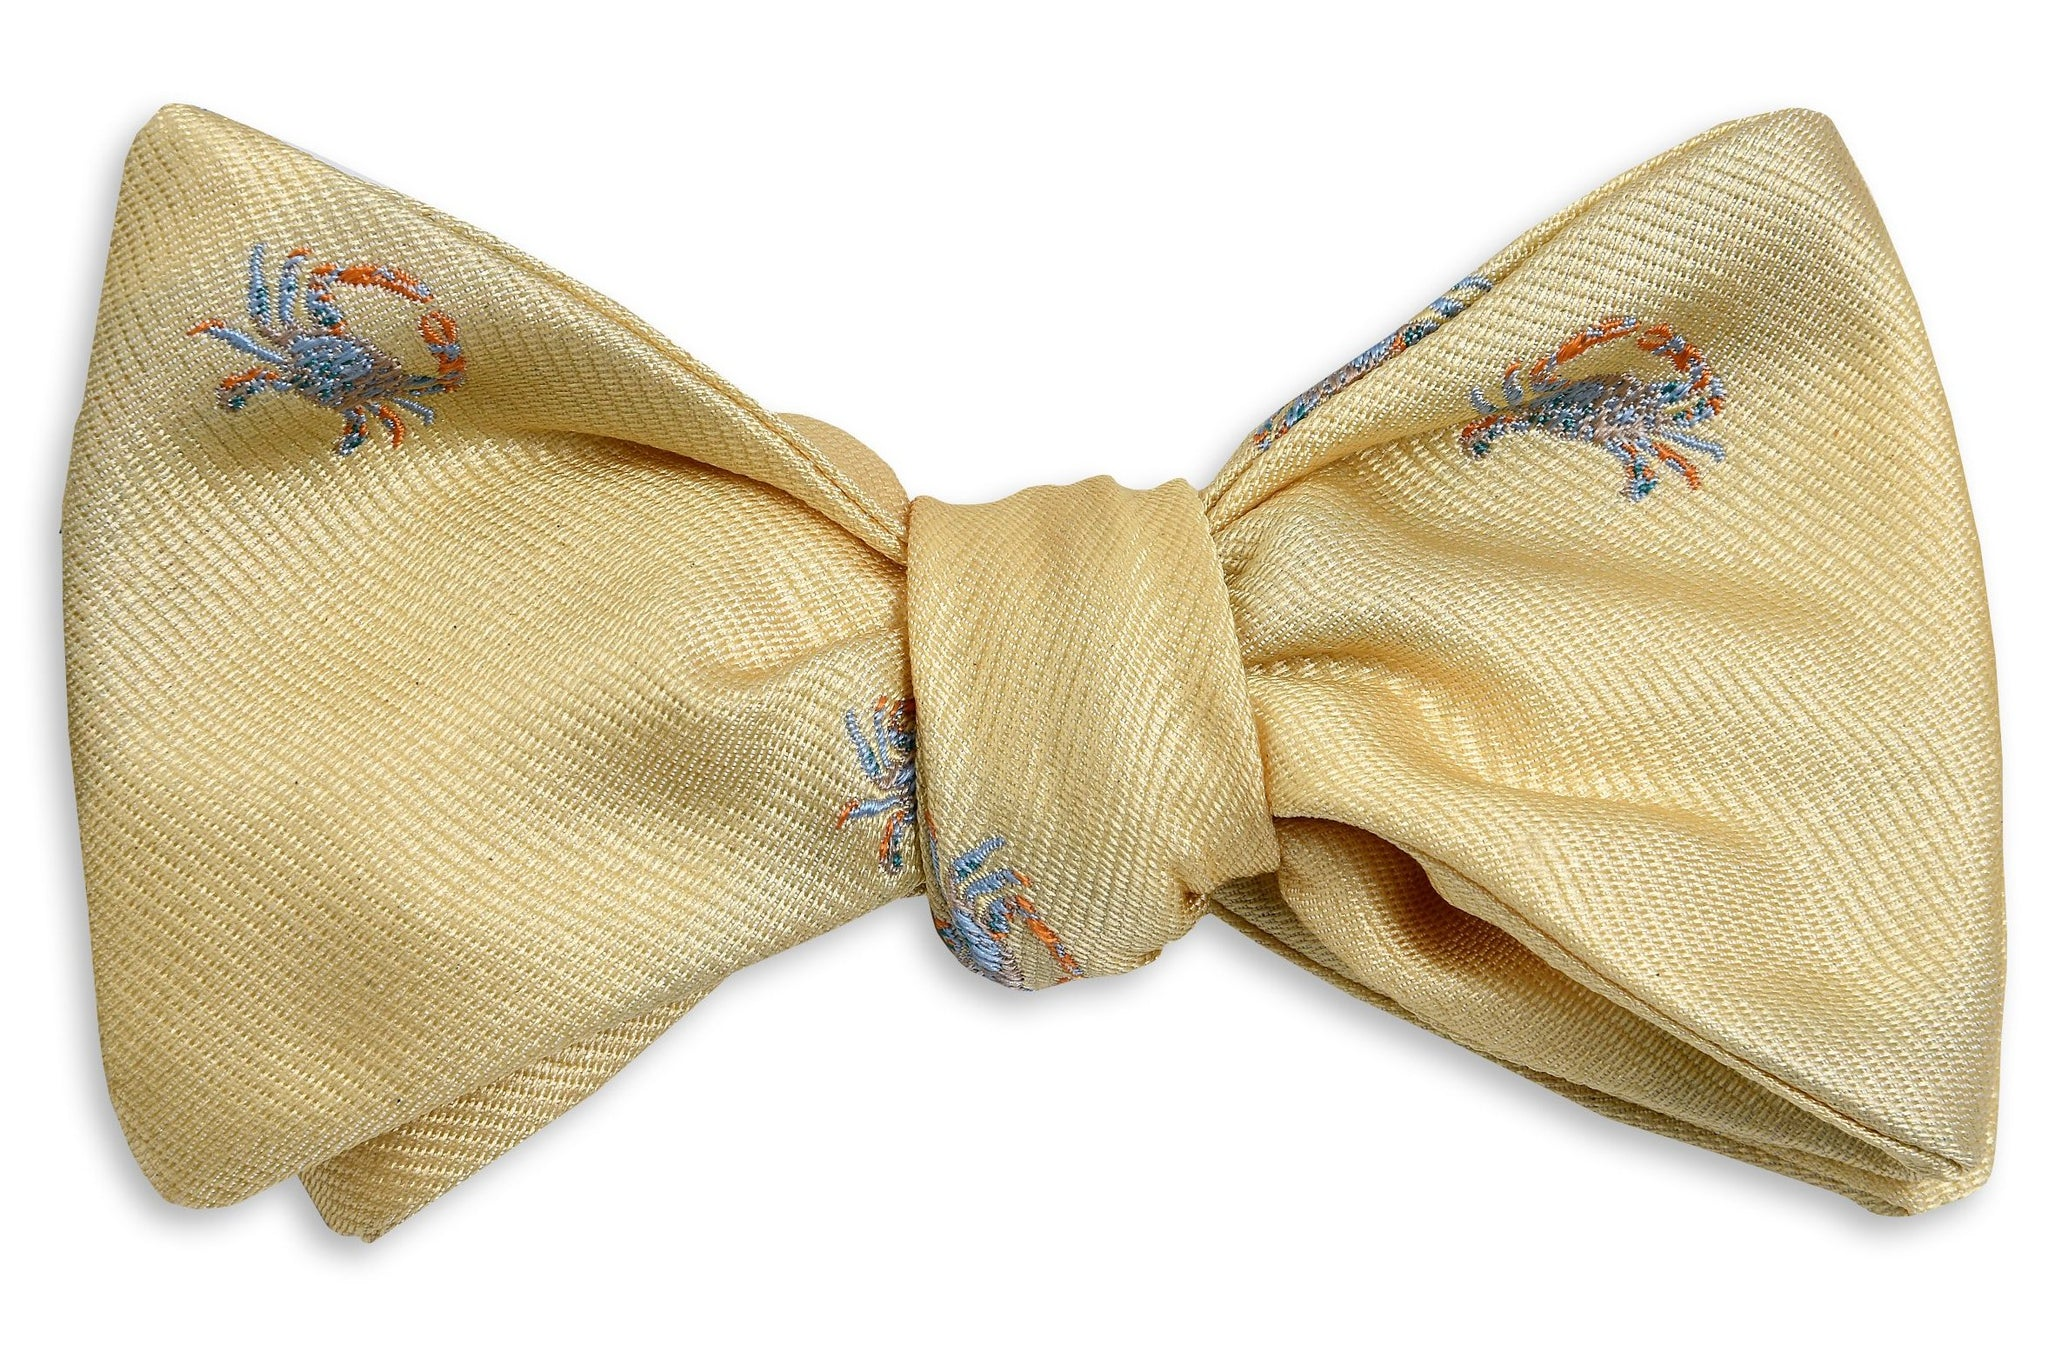 ec5d867e4f31 Blue Crab Bow Tie - Yellow